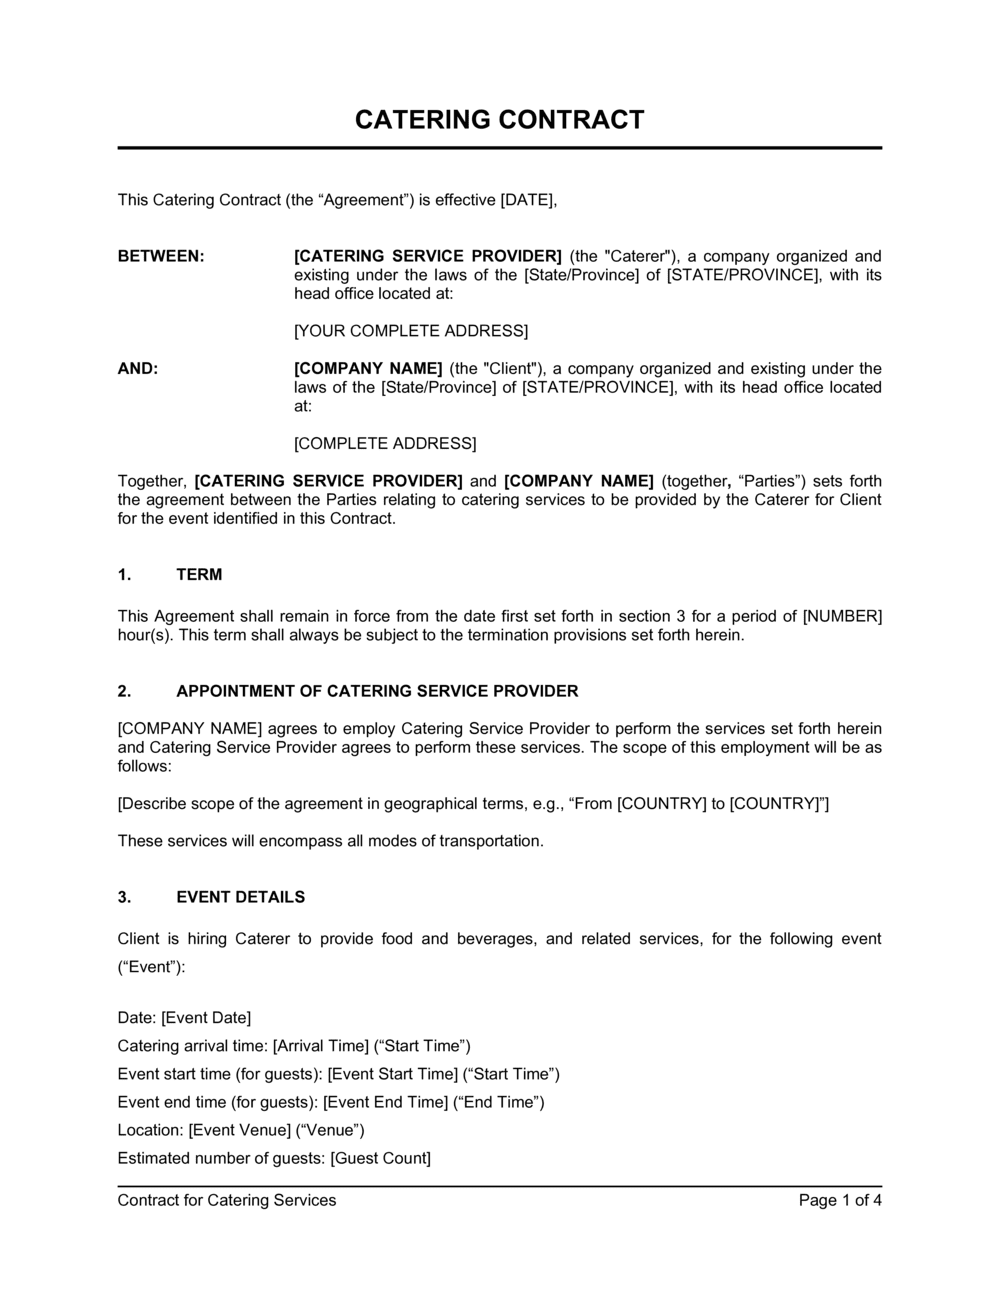 Business-in-a-Box's Catering Contract Template